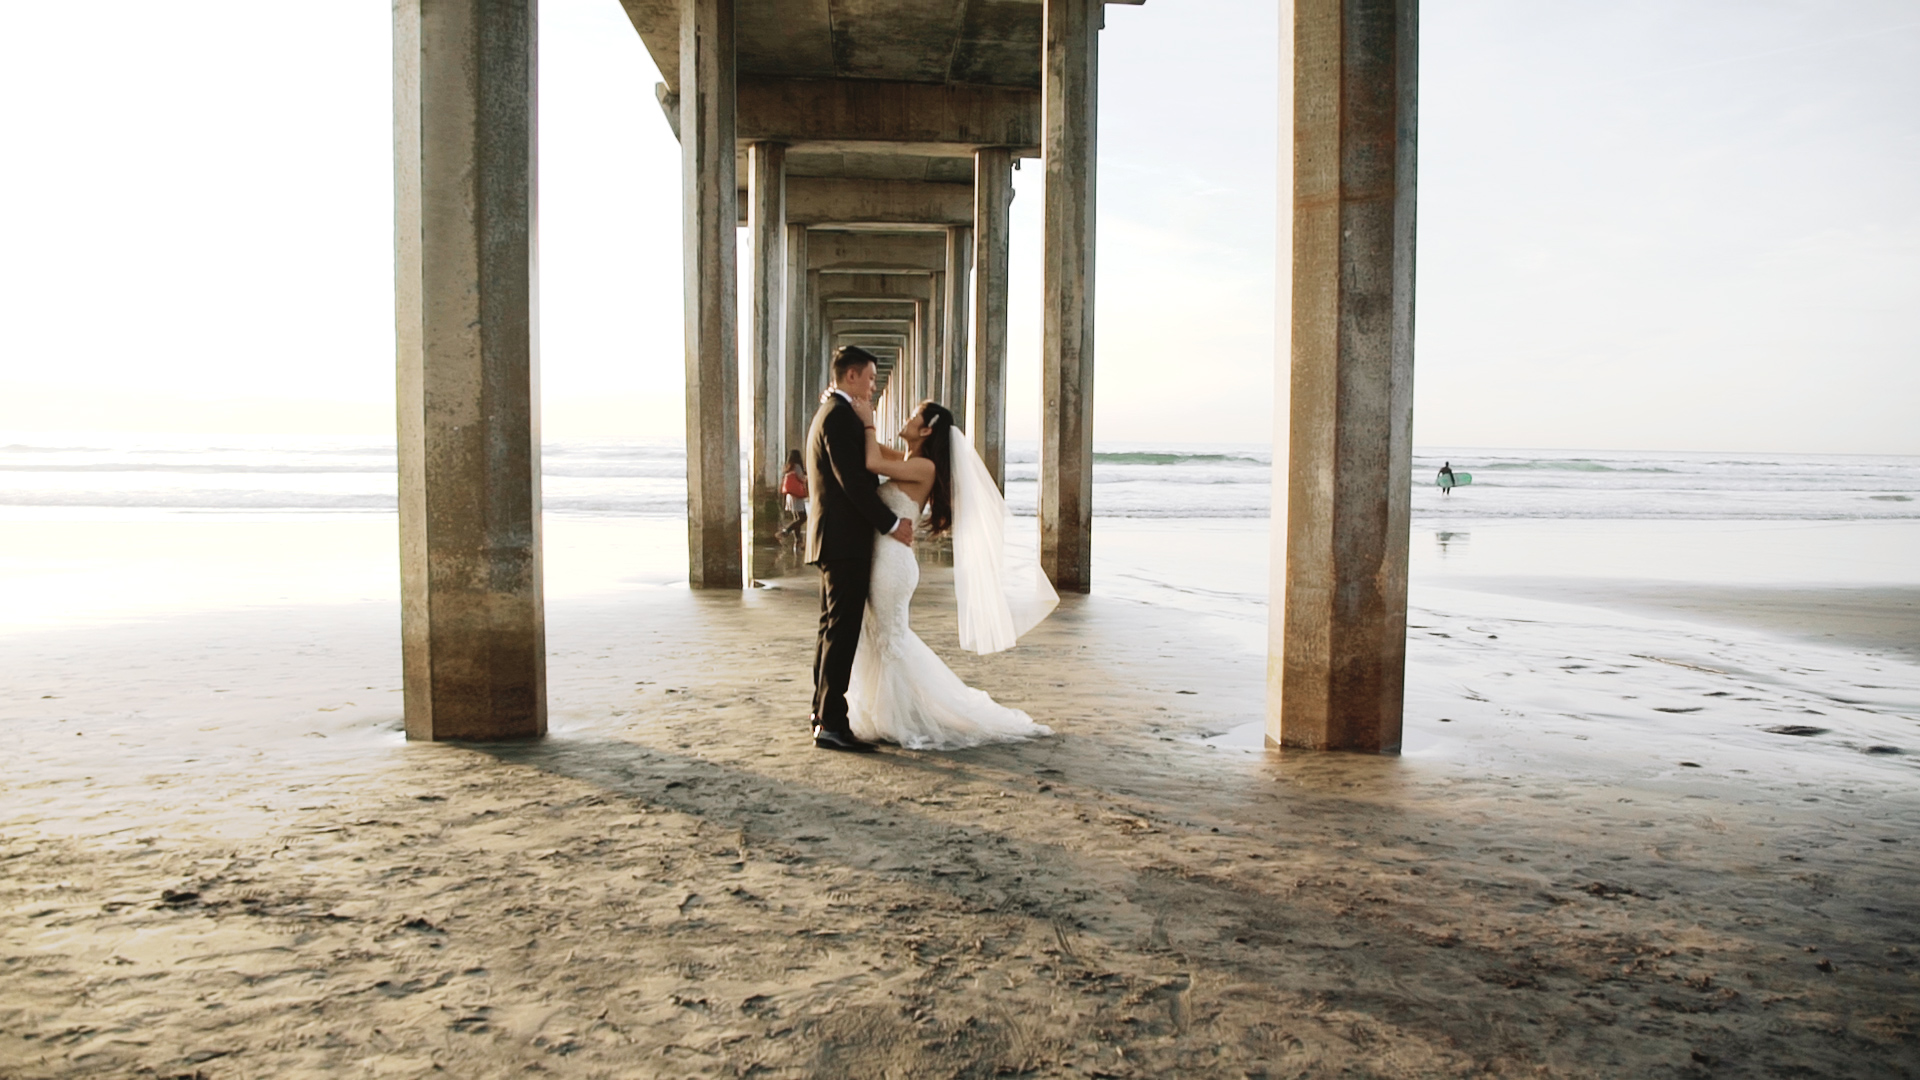 Alex + Jessica | San Diego, California | Scripps Seaside Forum